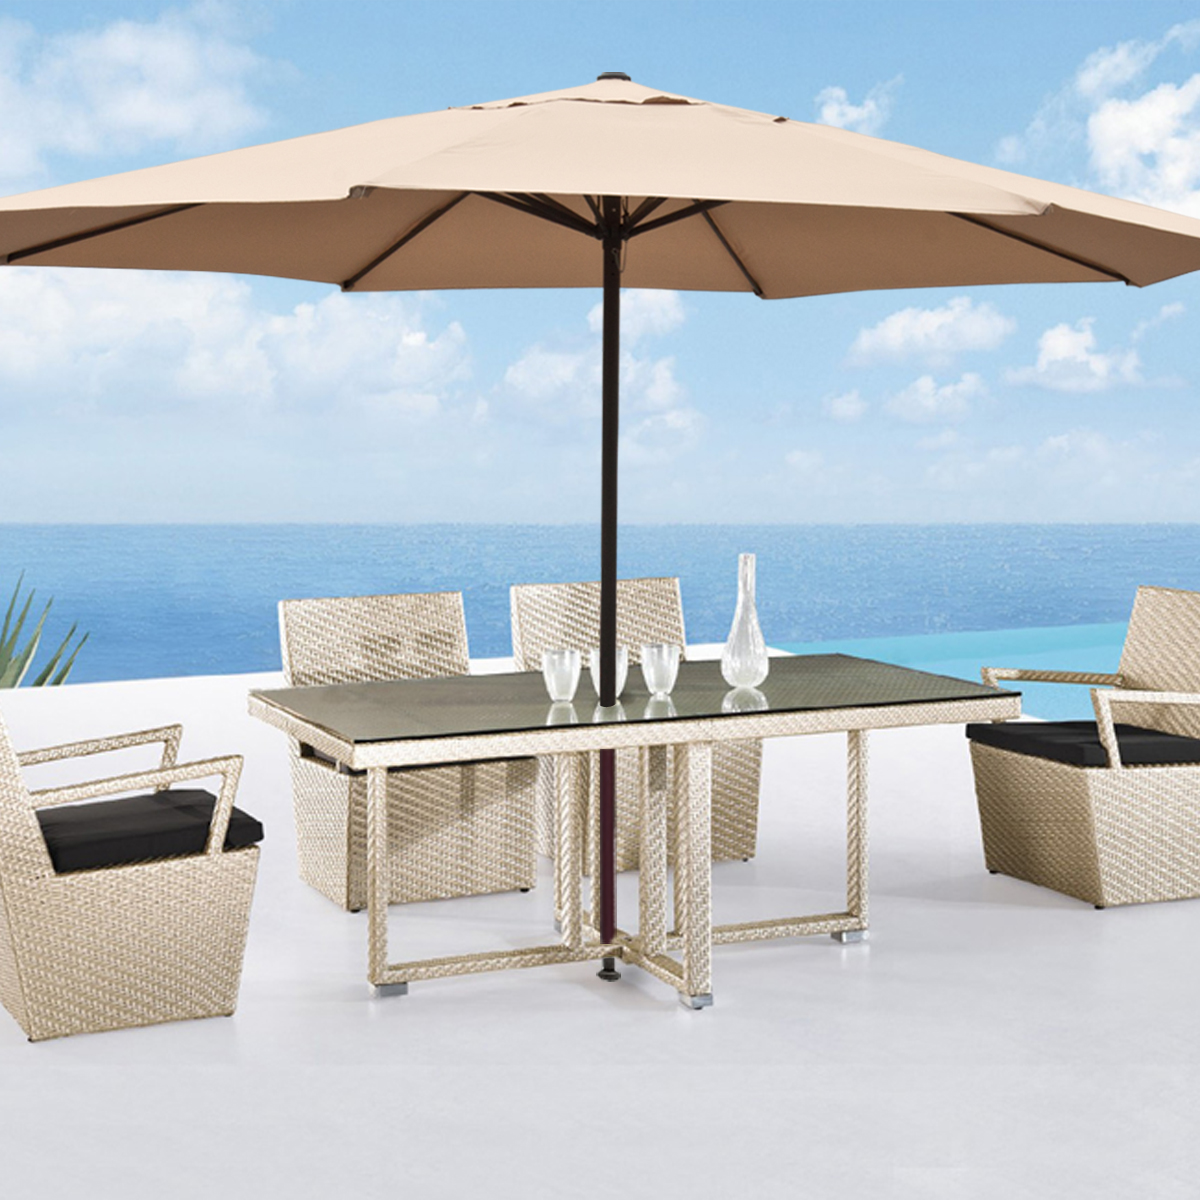 Large patio umbrella 13 39 ft feet beige tent deck gazebo sun shade cover market ebay - Shade canopy for deck ...